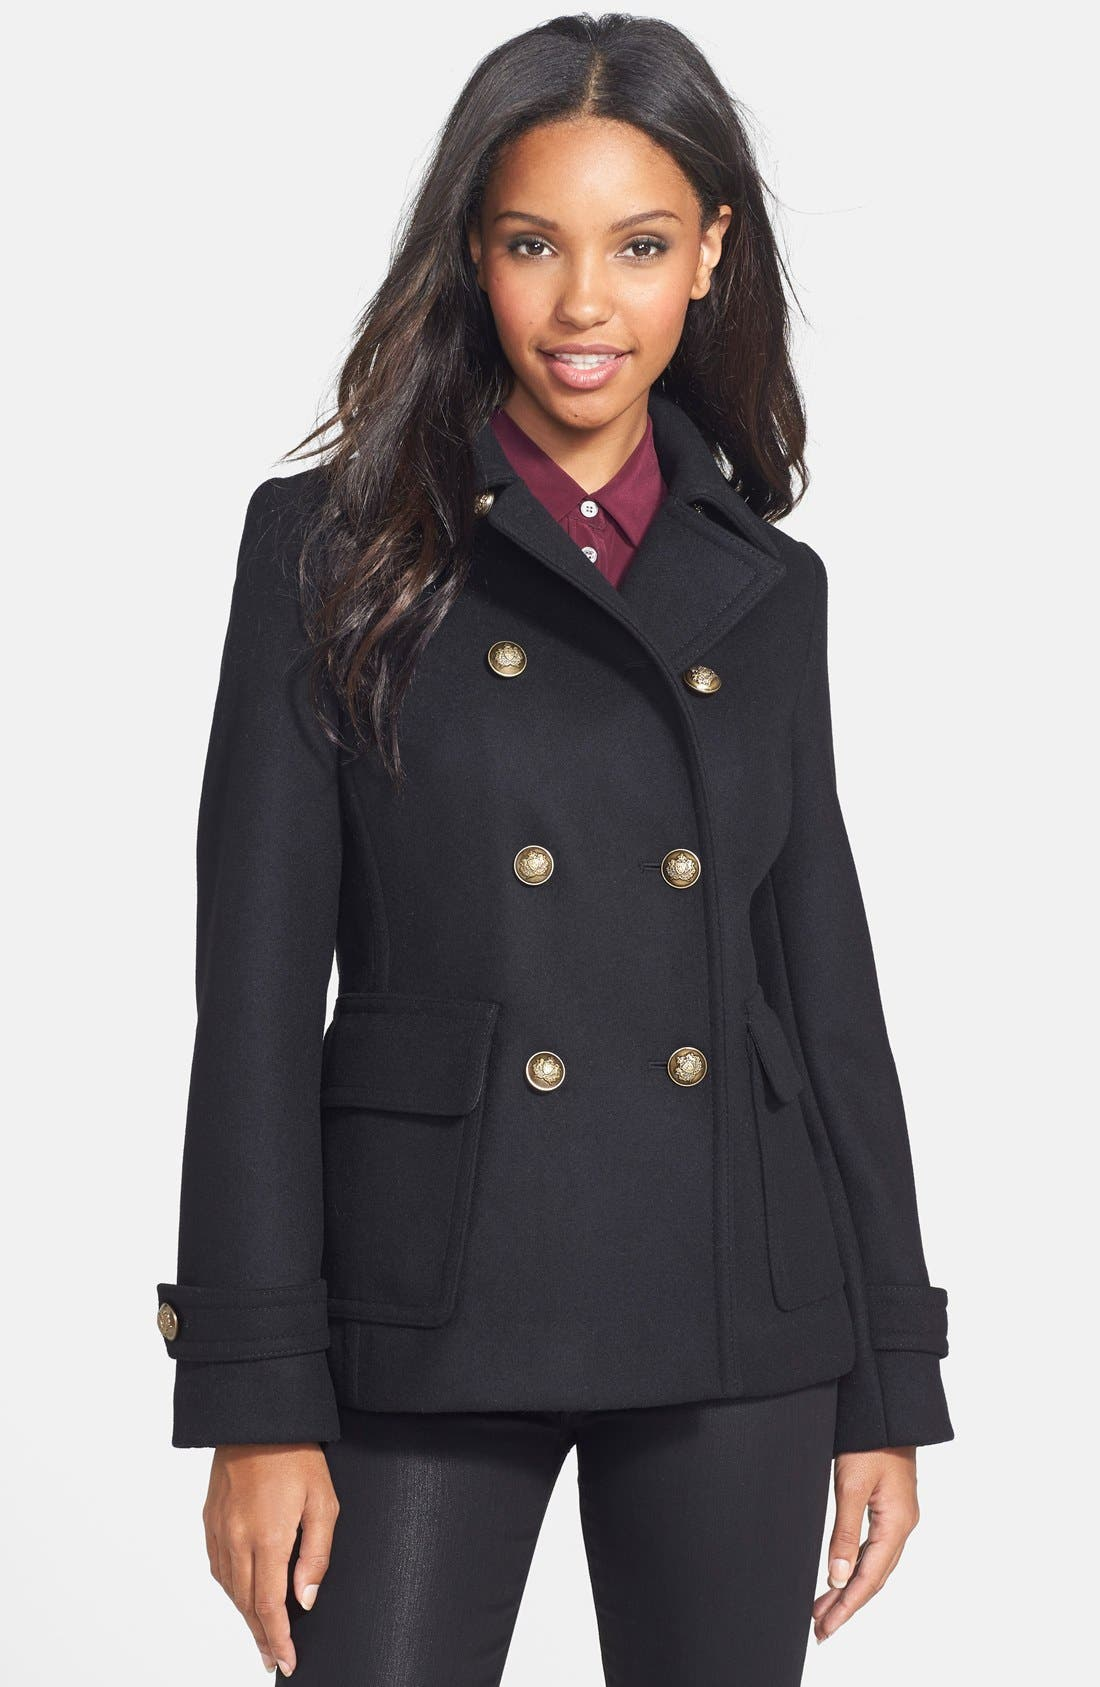 Main Image - Kristen Blake Double Breasted Wool Blend Skirted Peacoat (Regular & Petite)